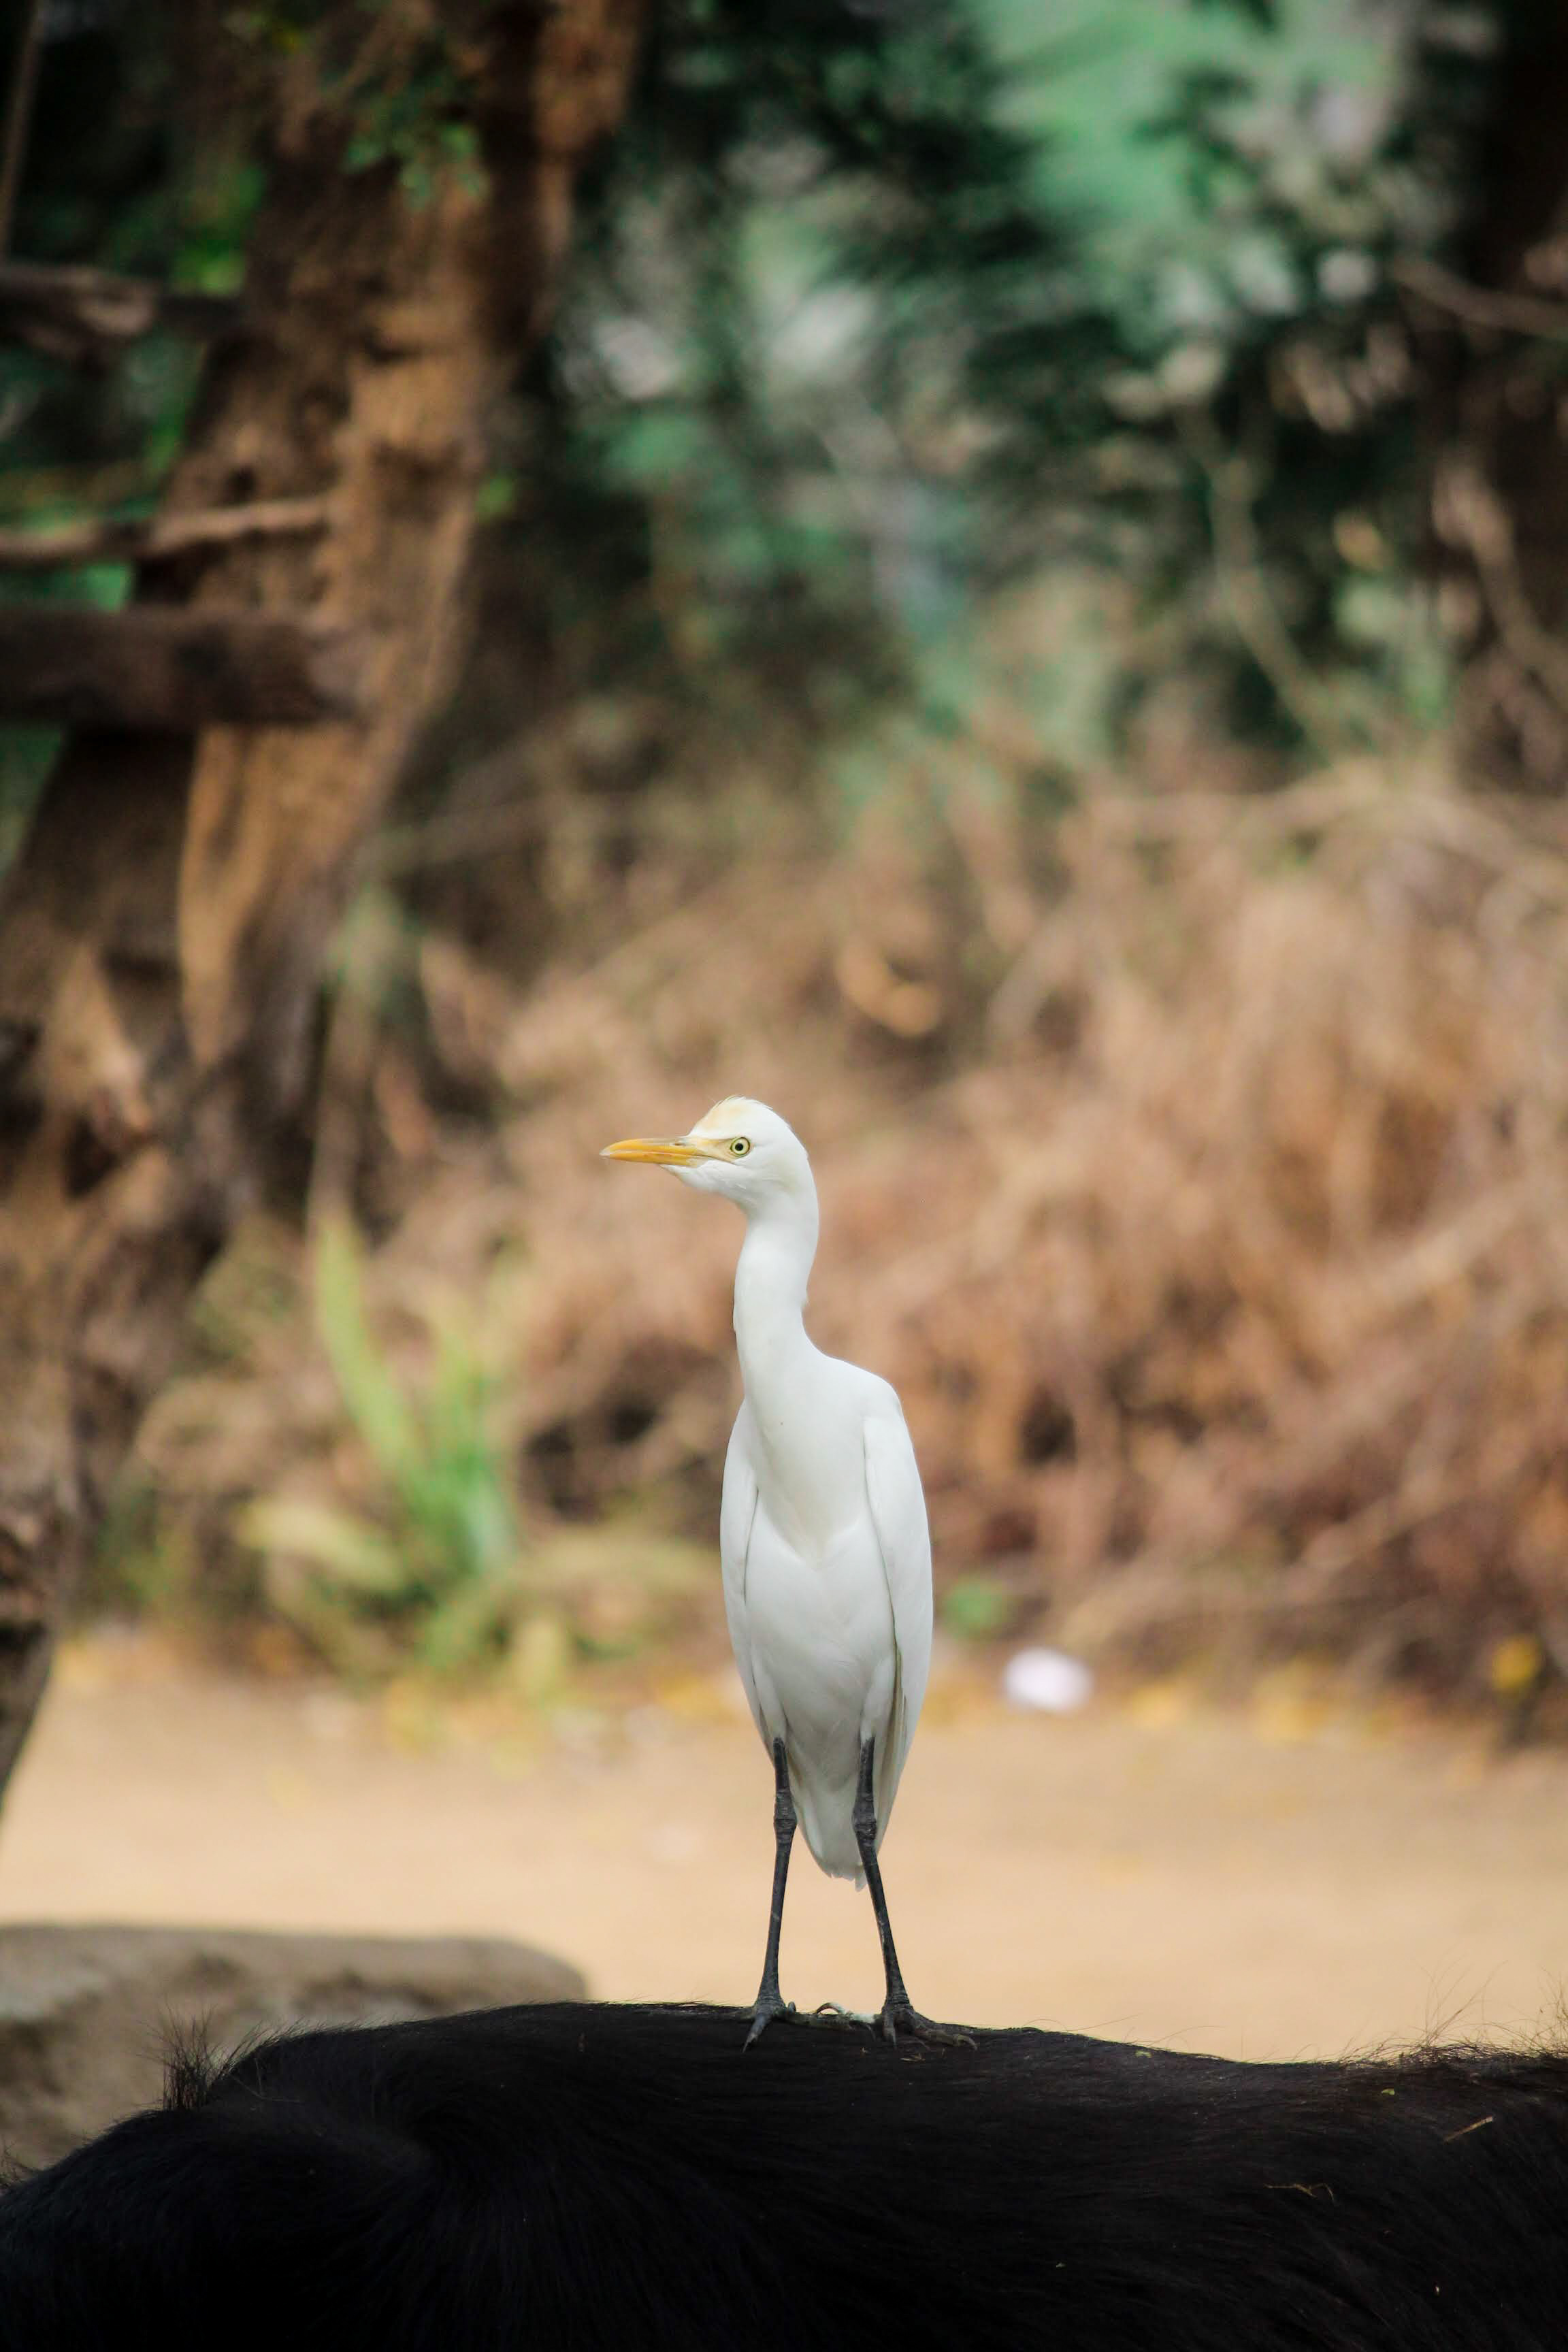 close up shot of a great egret standing